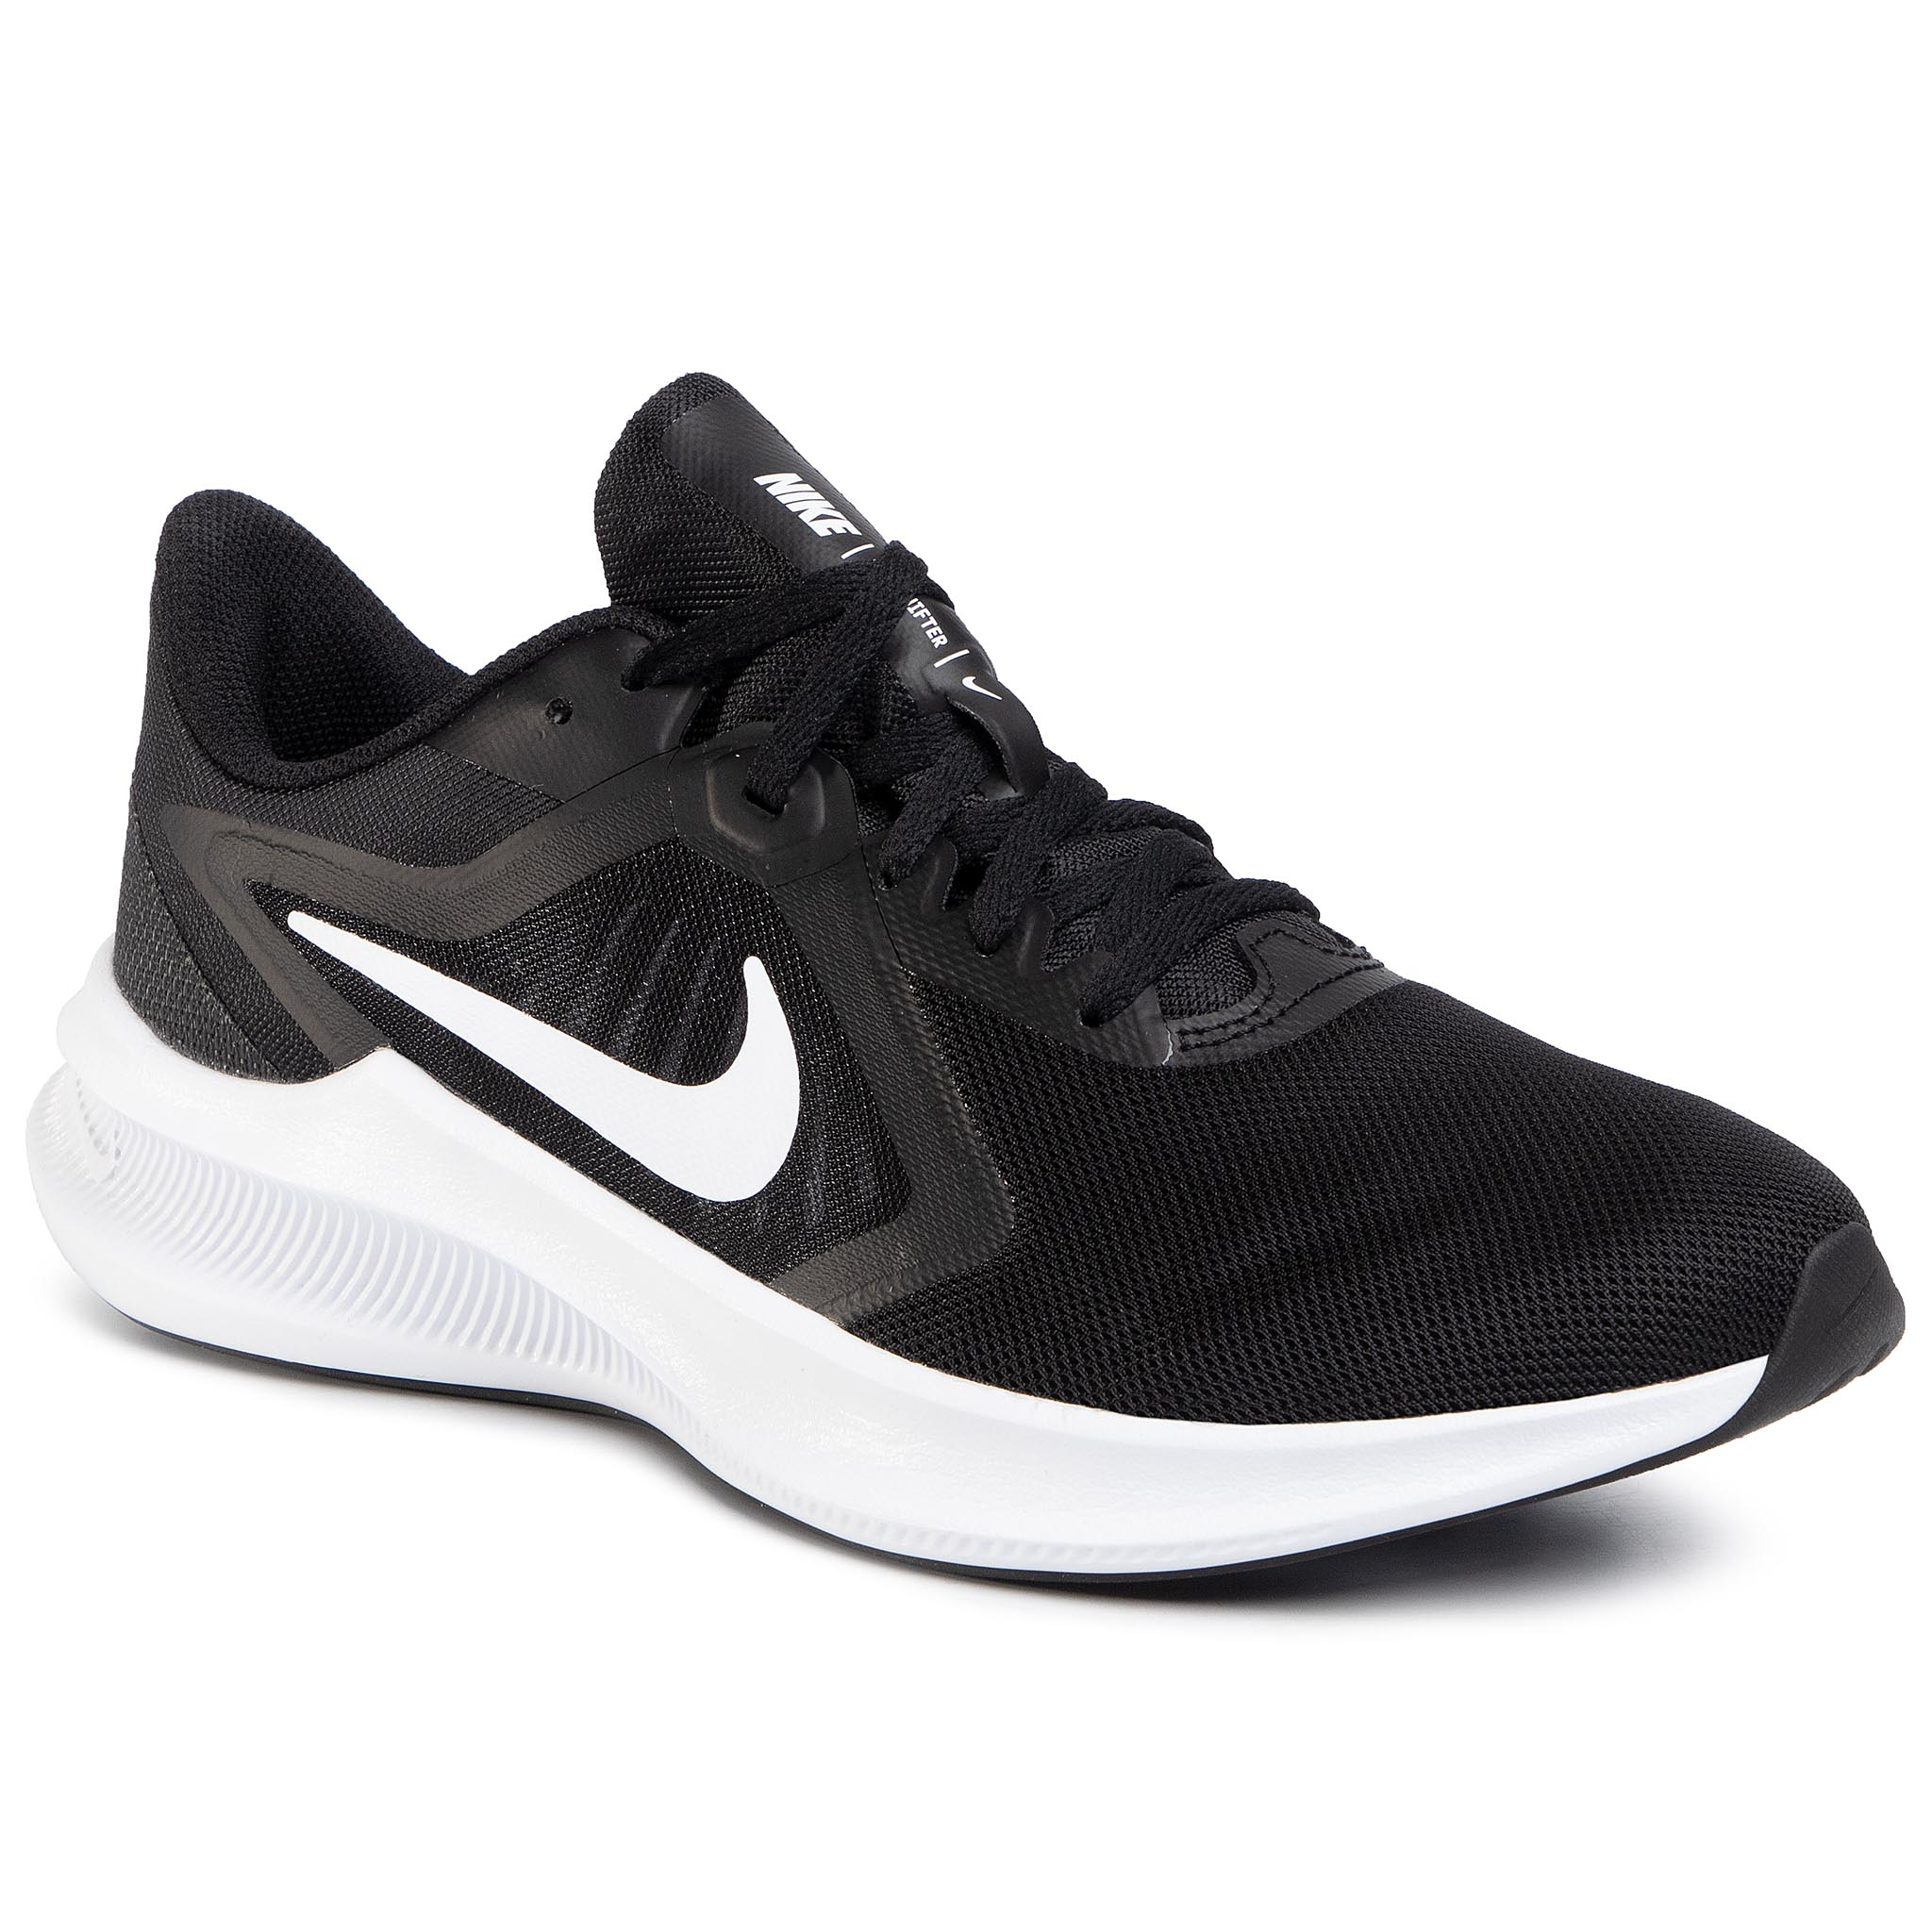 Pantofi NIKE - Downshifter 10 CI9981 004 Black/White/Anthracite